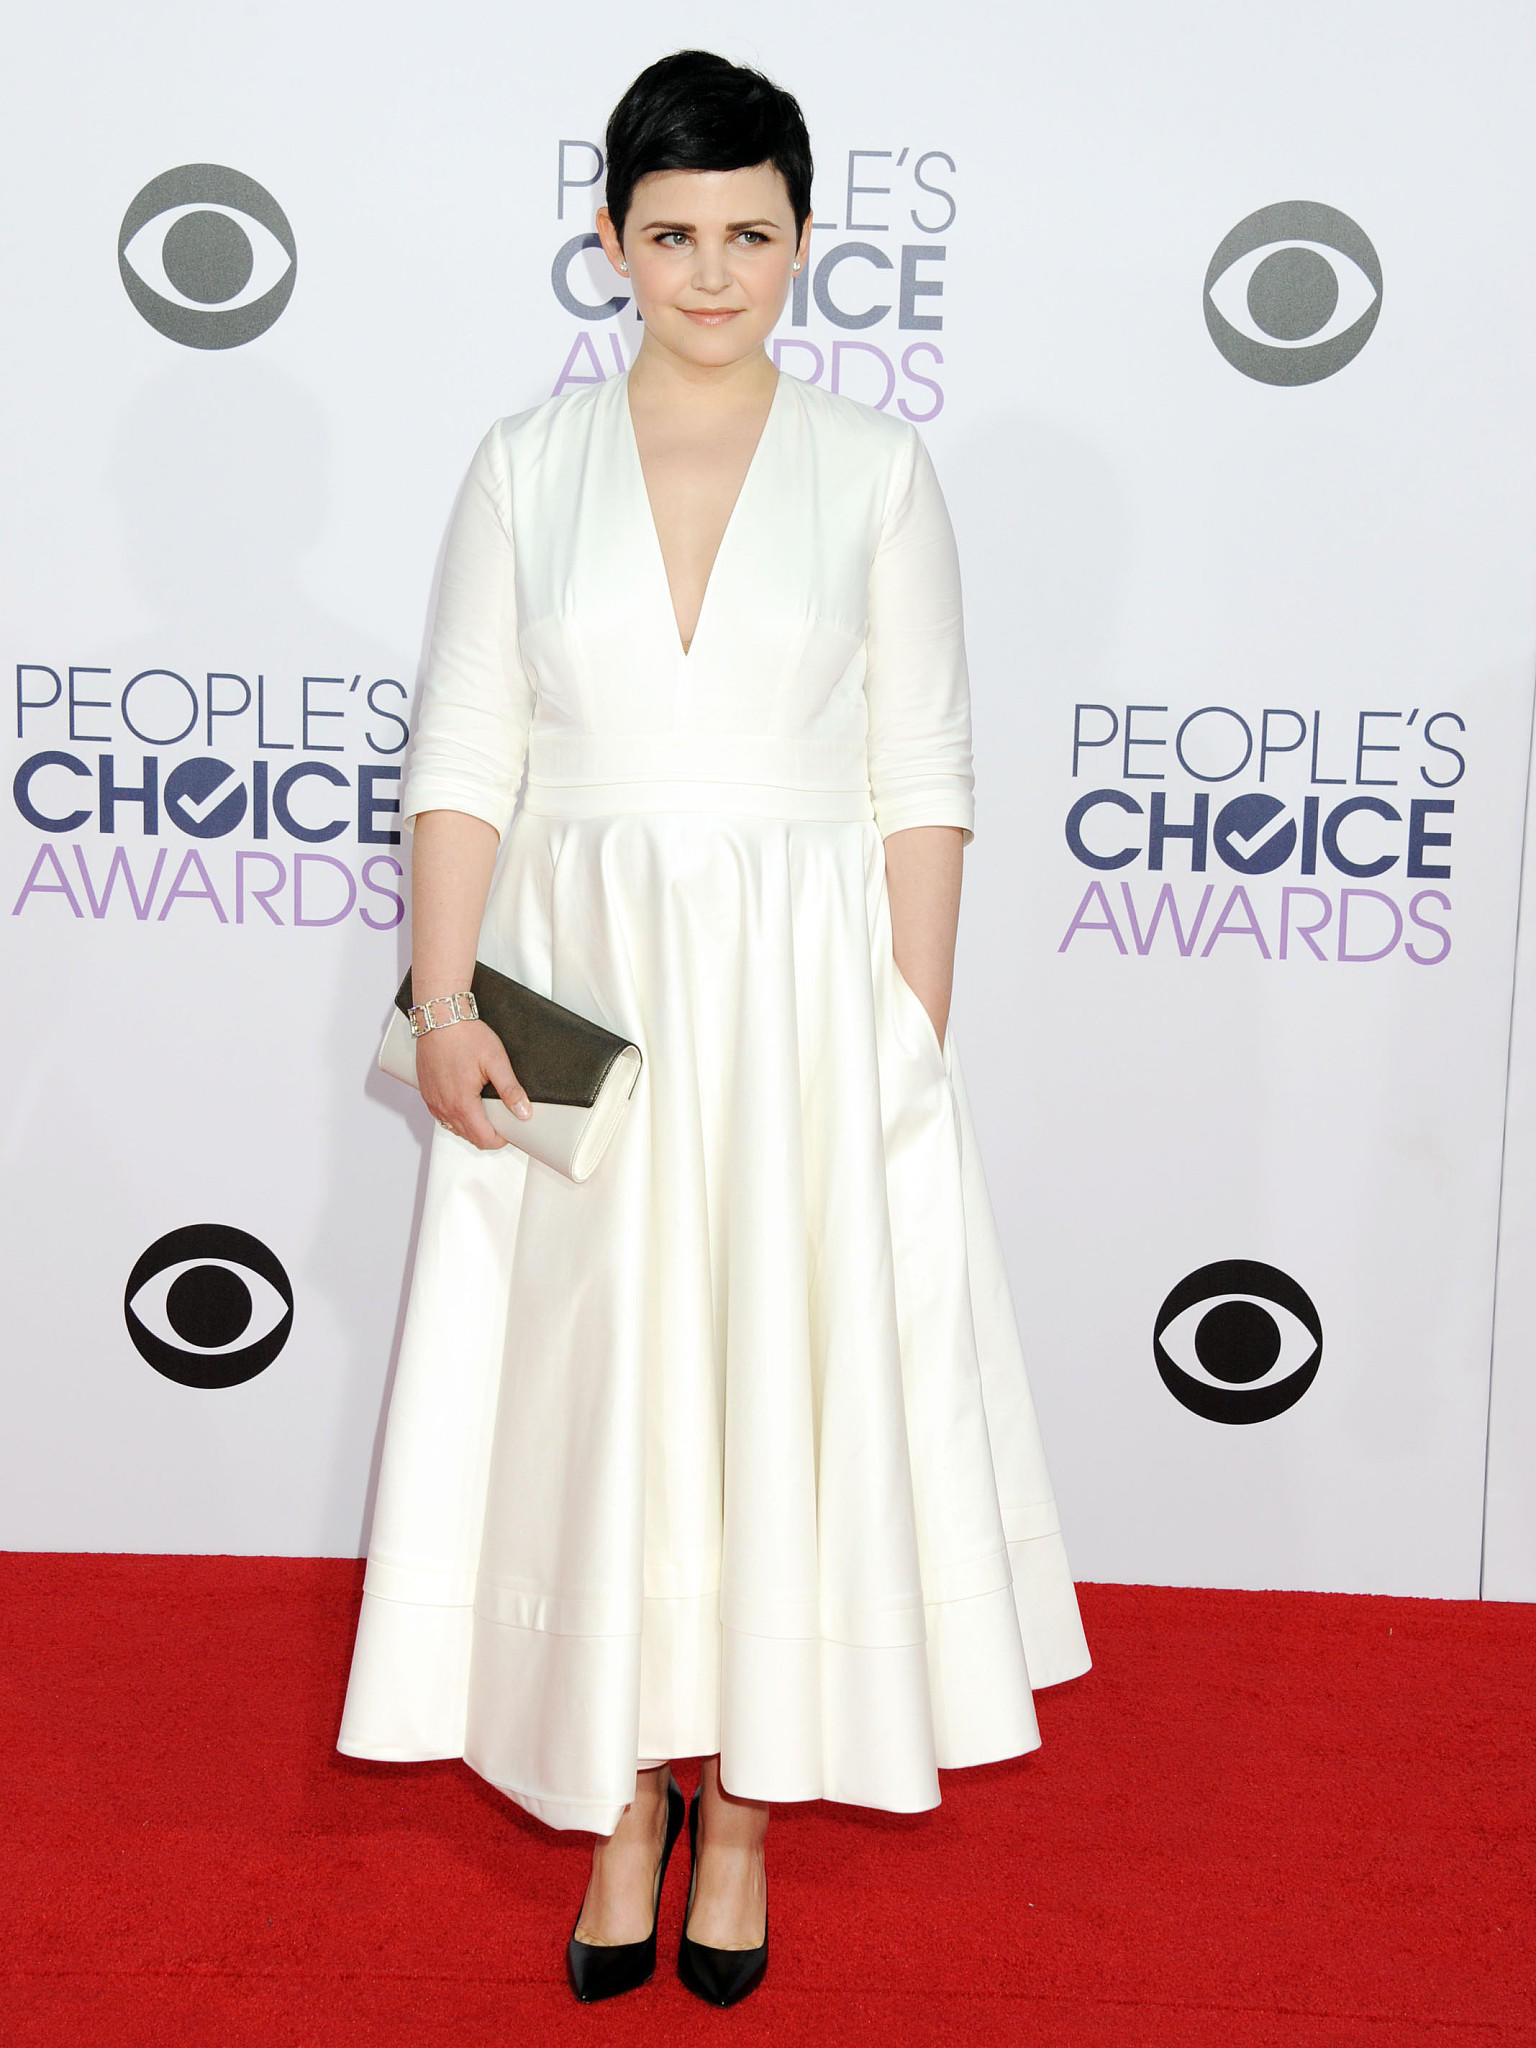 Peoples Choice Awards 2015 Kleider Roter Teppich Styling